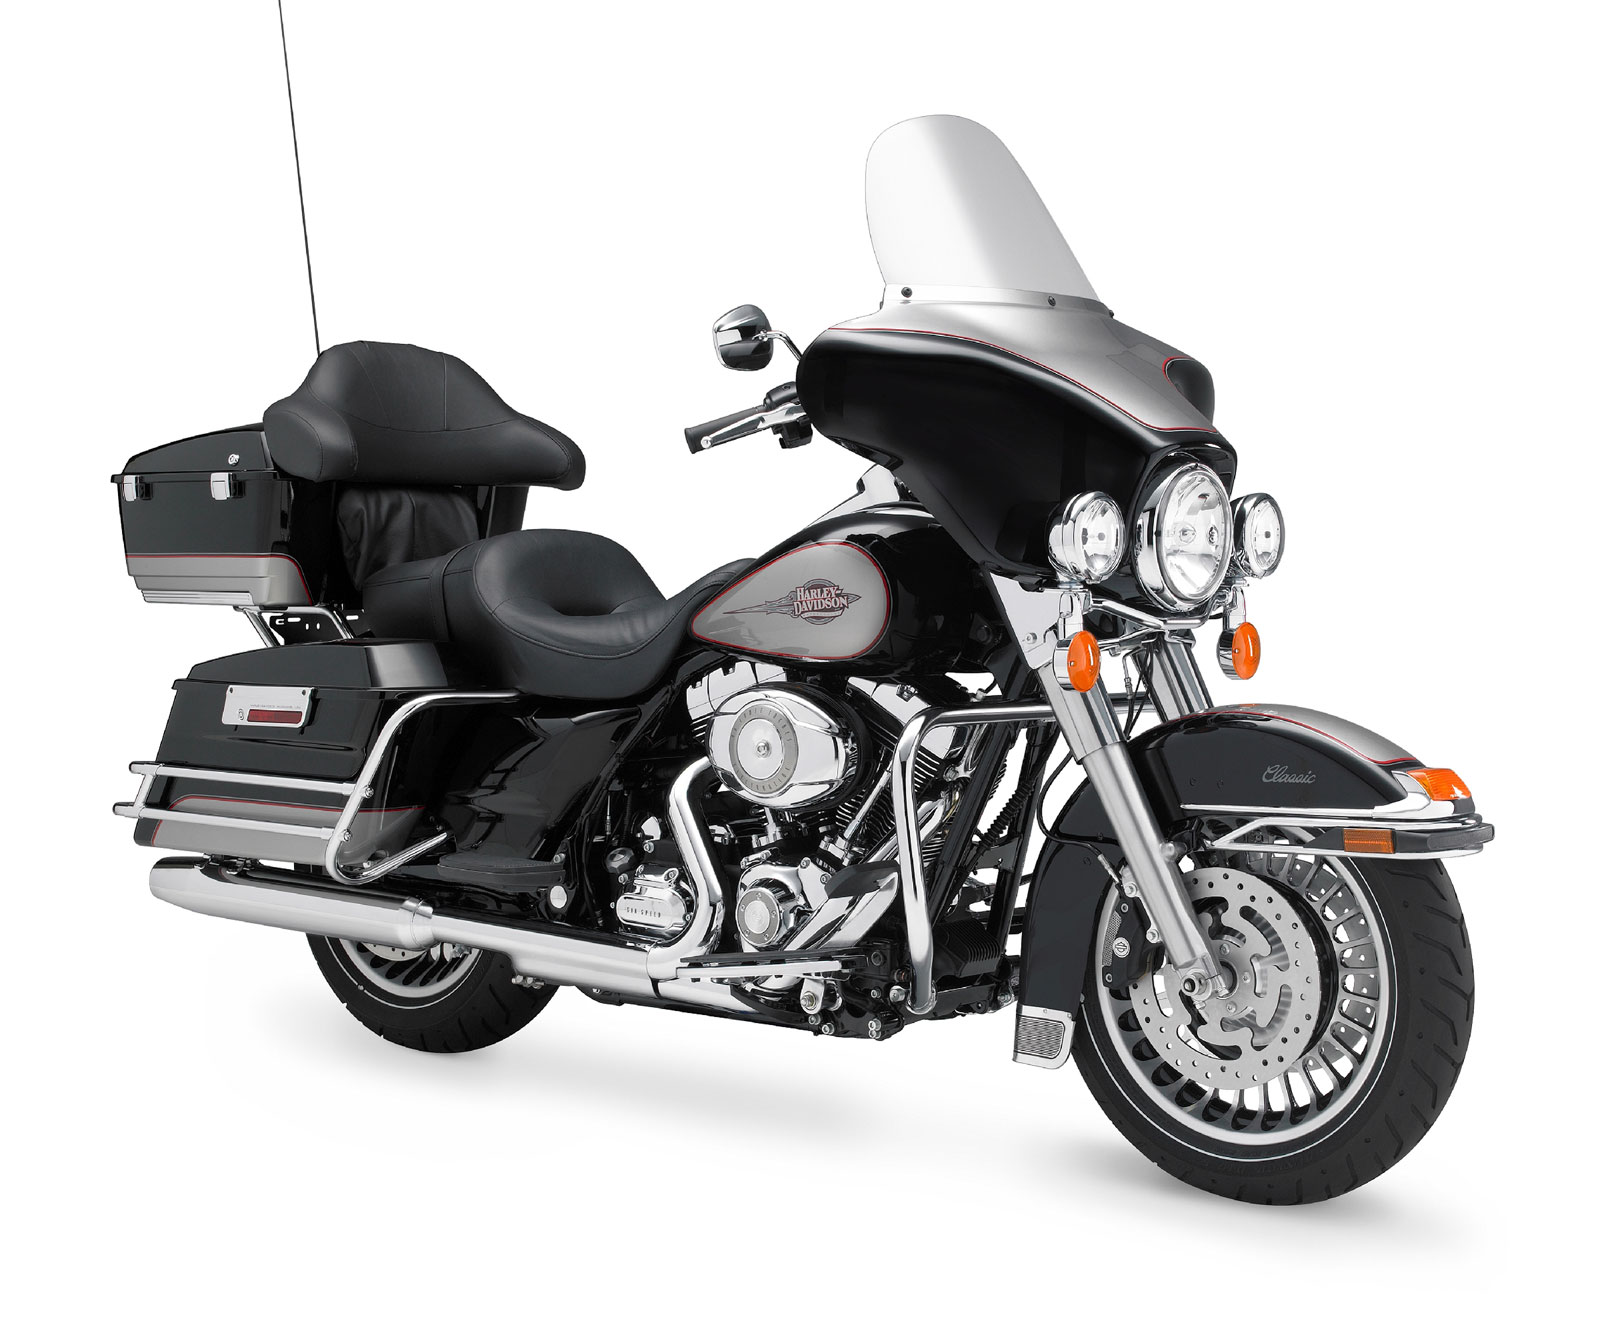 Harley-Davidson FLHTC Electra Glide Classic 2010 pics #19046